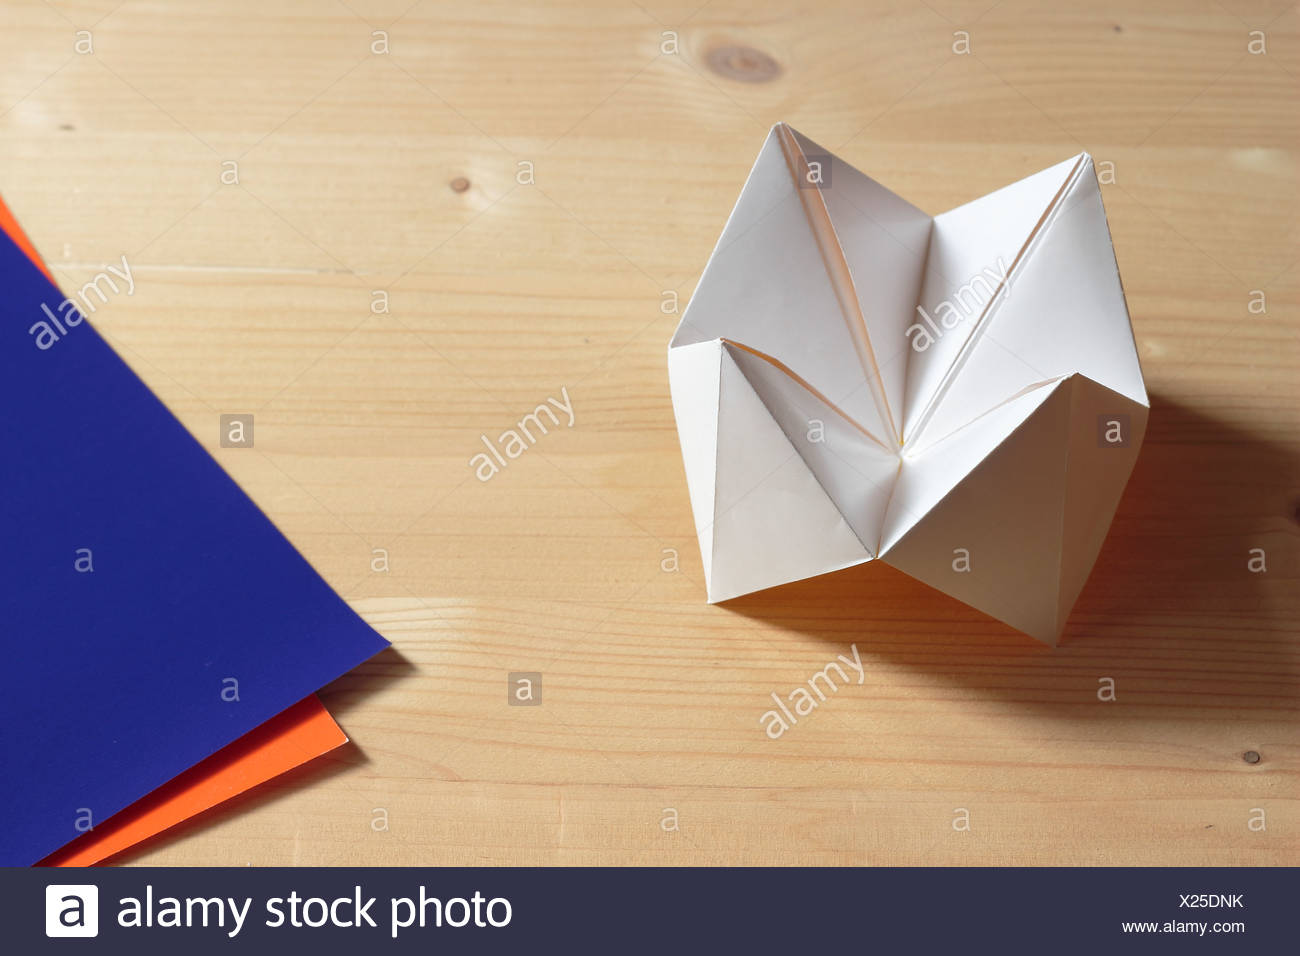 Paper fortune teller game stock photos paper fortune teller game origami fortune teller on wooden table stock image jeuxipadfo Images